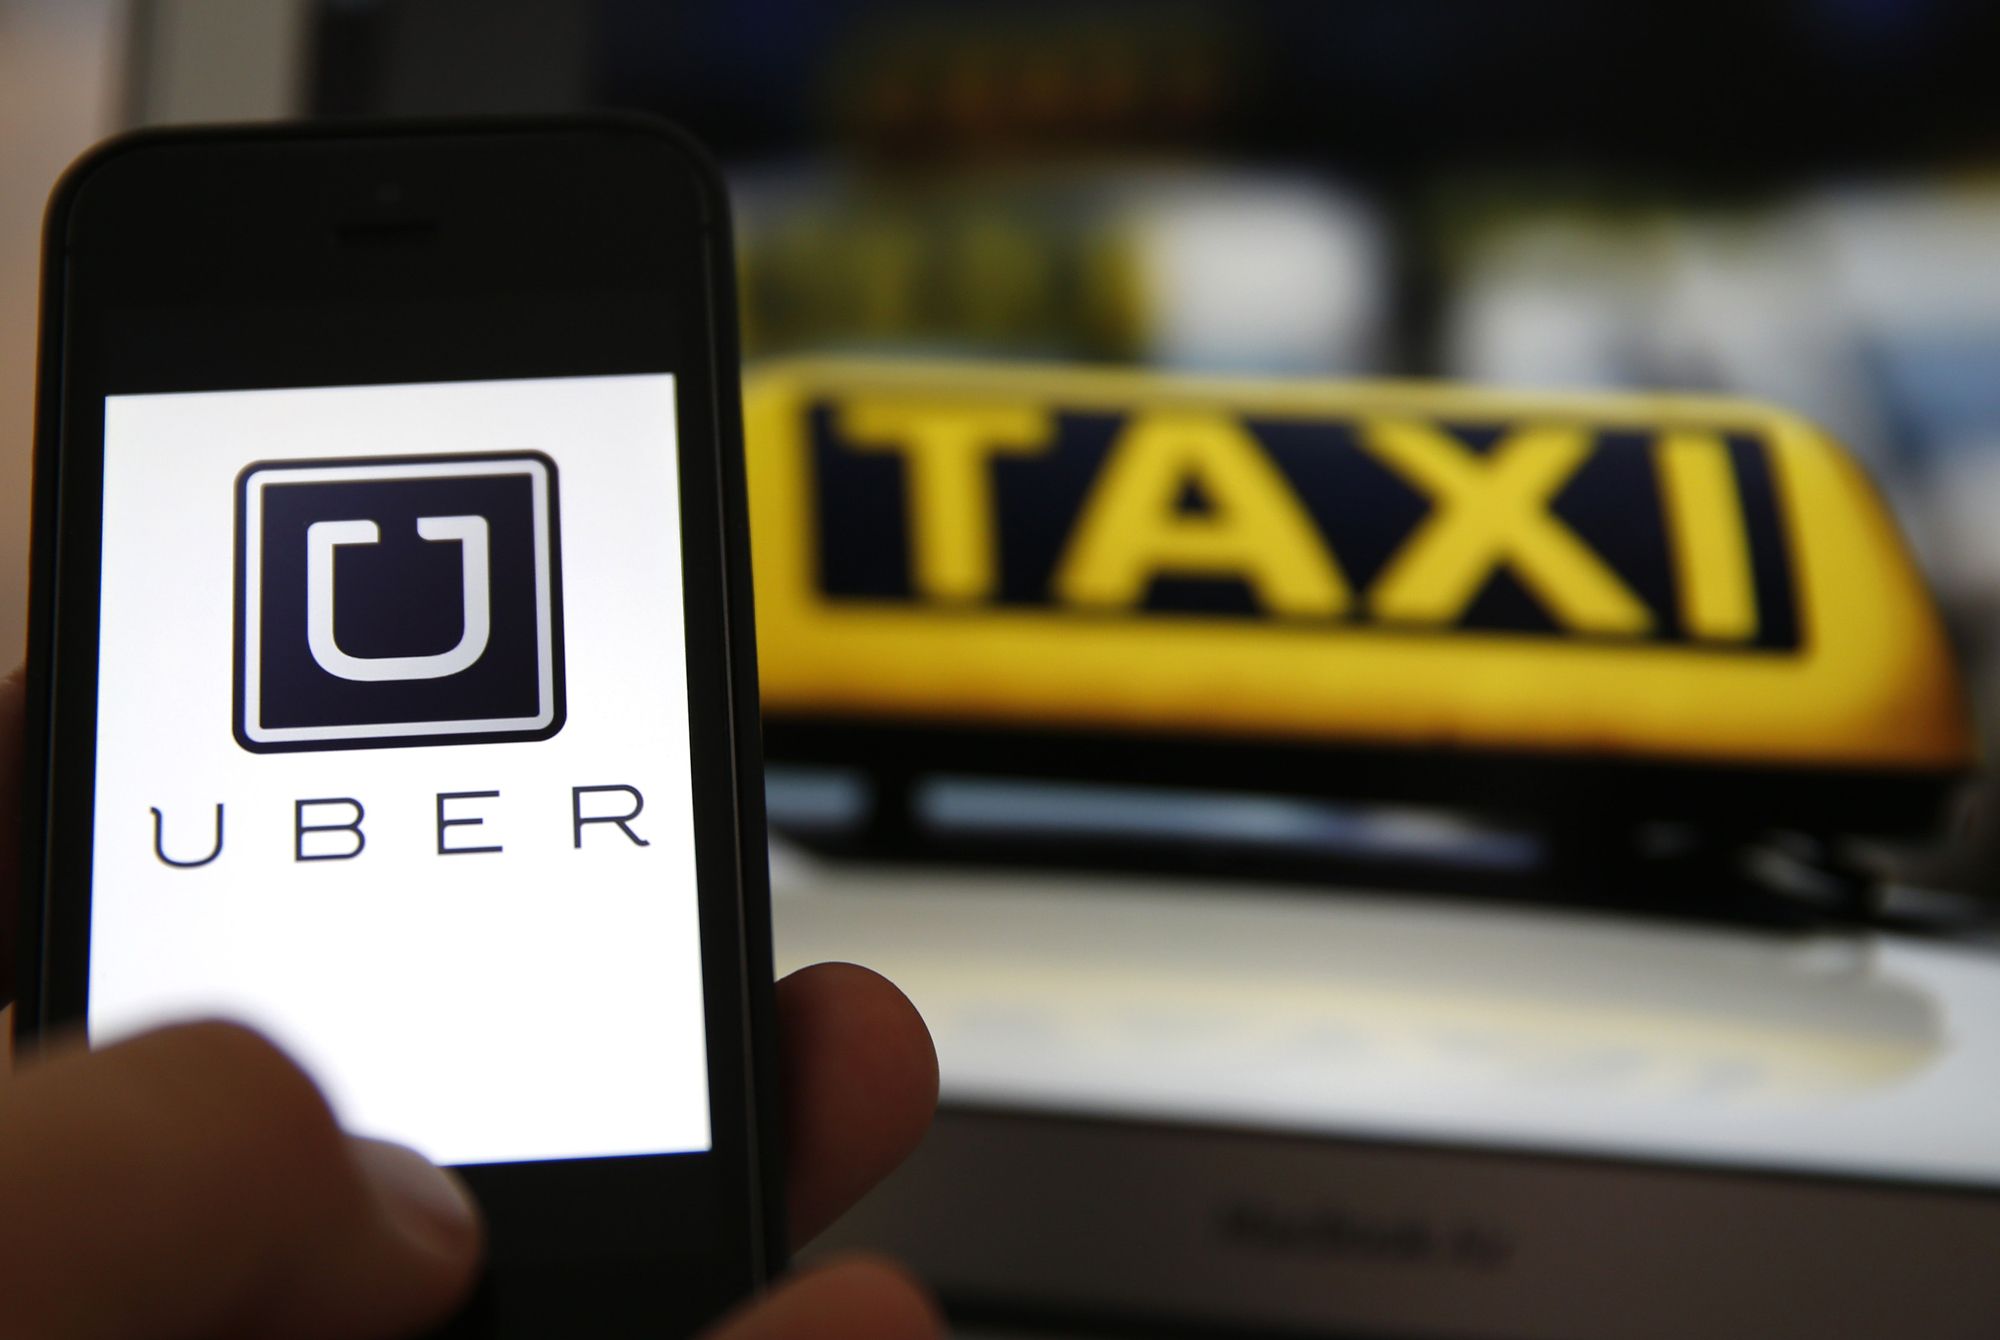 This Is Local London: APP: The Uber app being used on a smartphone